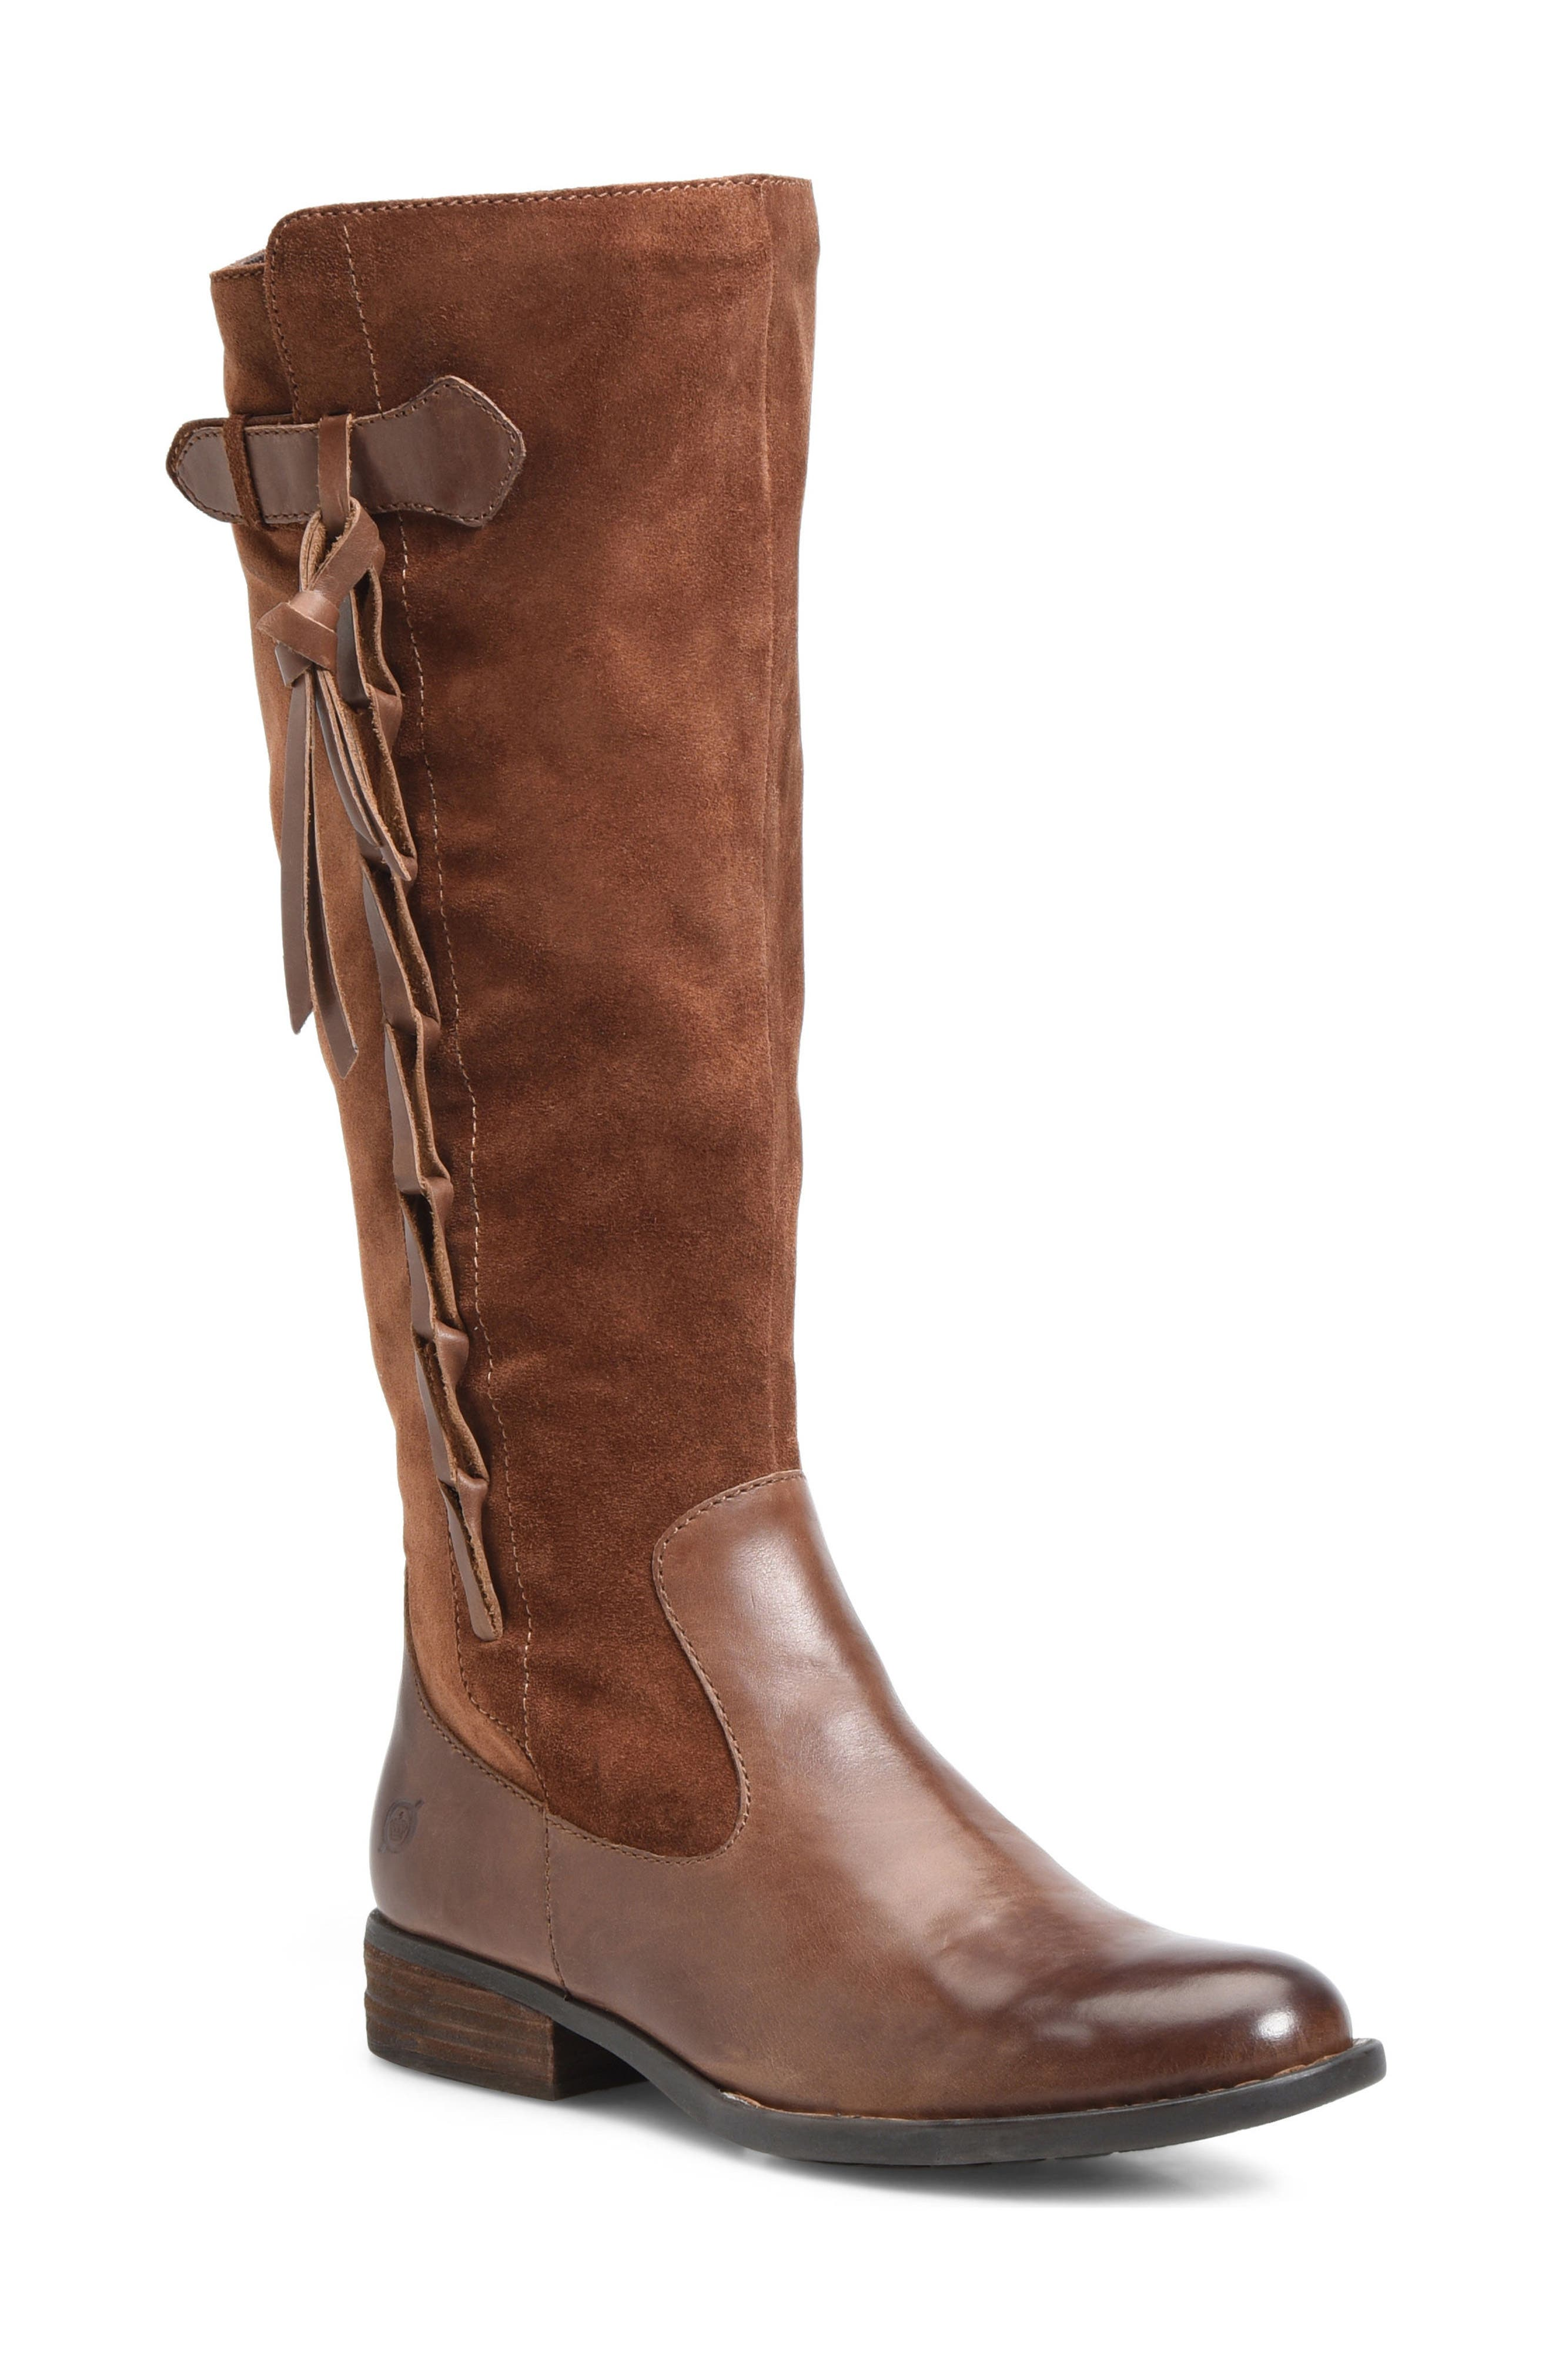 Cook Knee High Boot,                             Main thumbnail 1, color,                             Brown/ Rust Combo